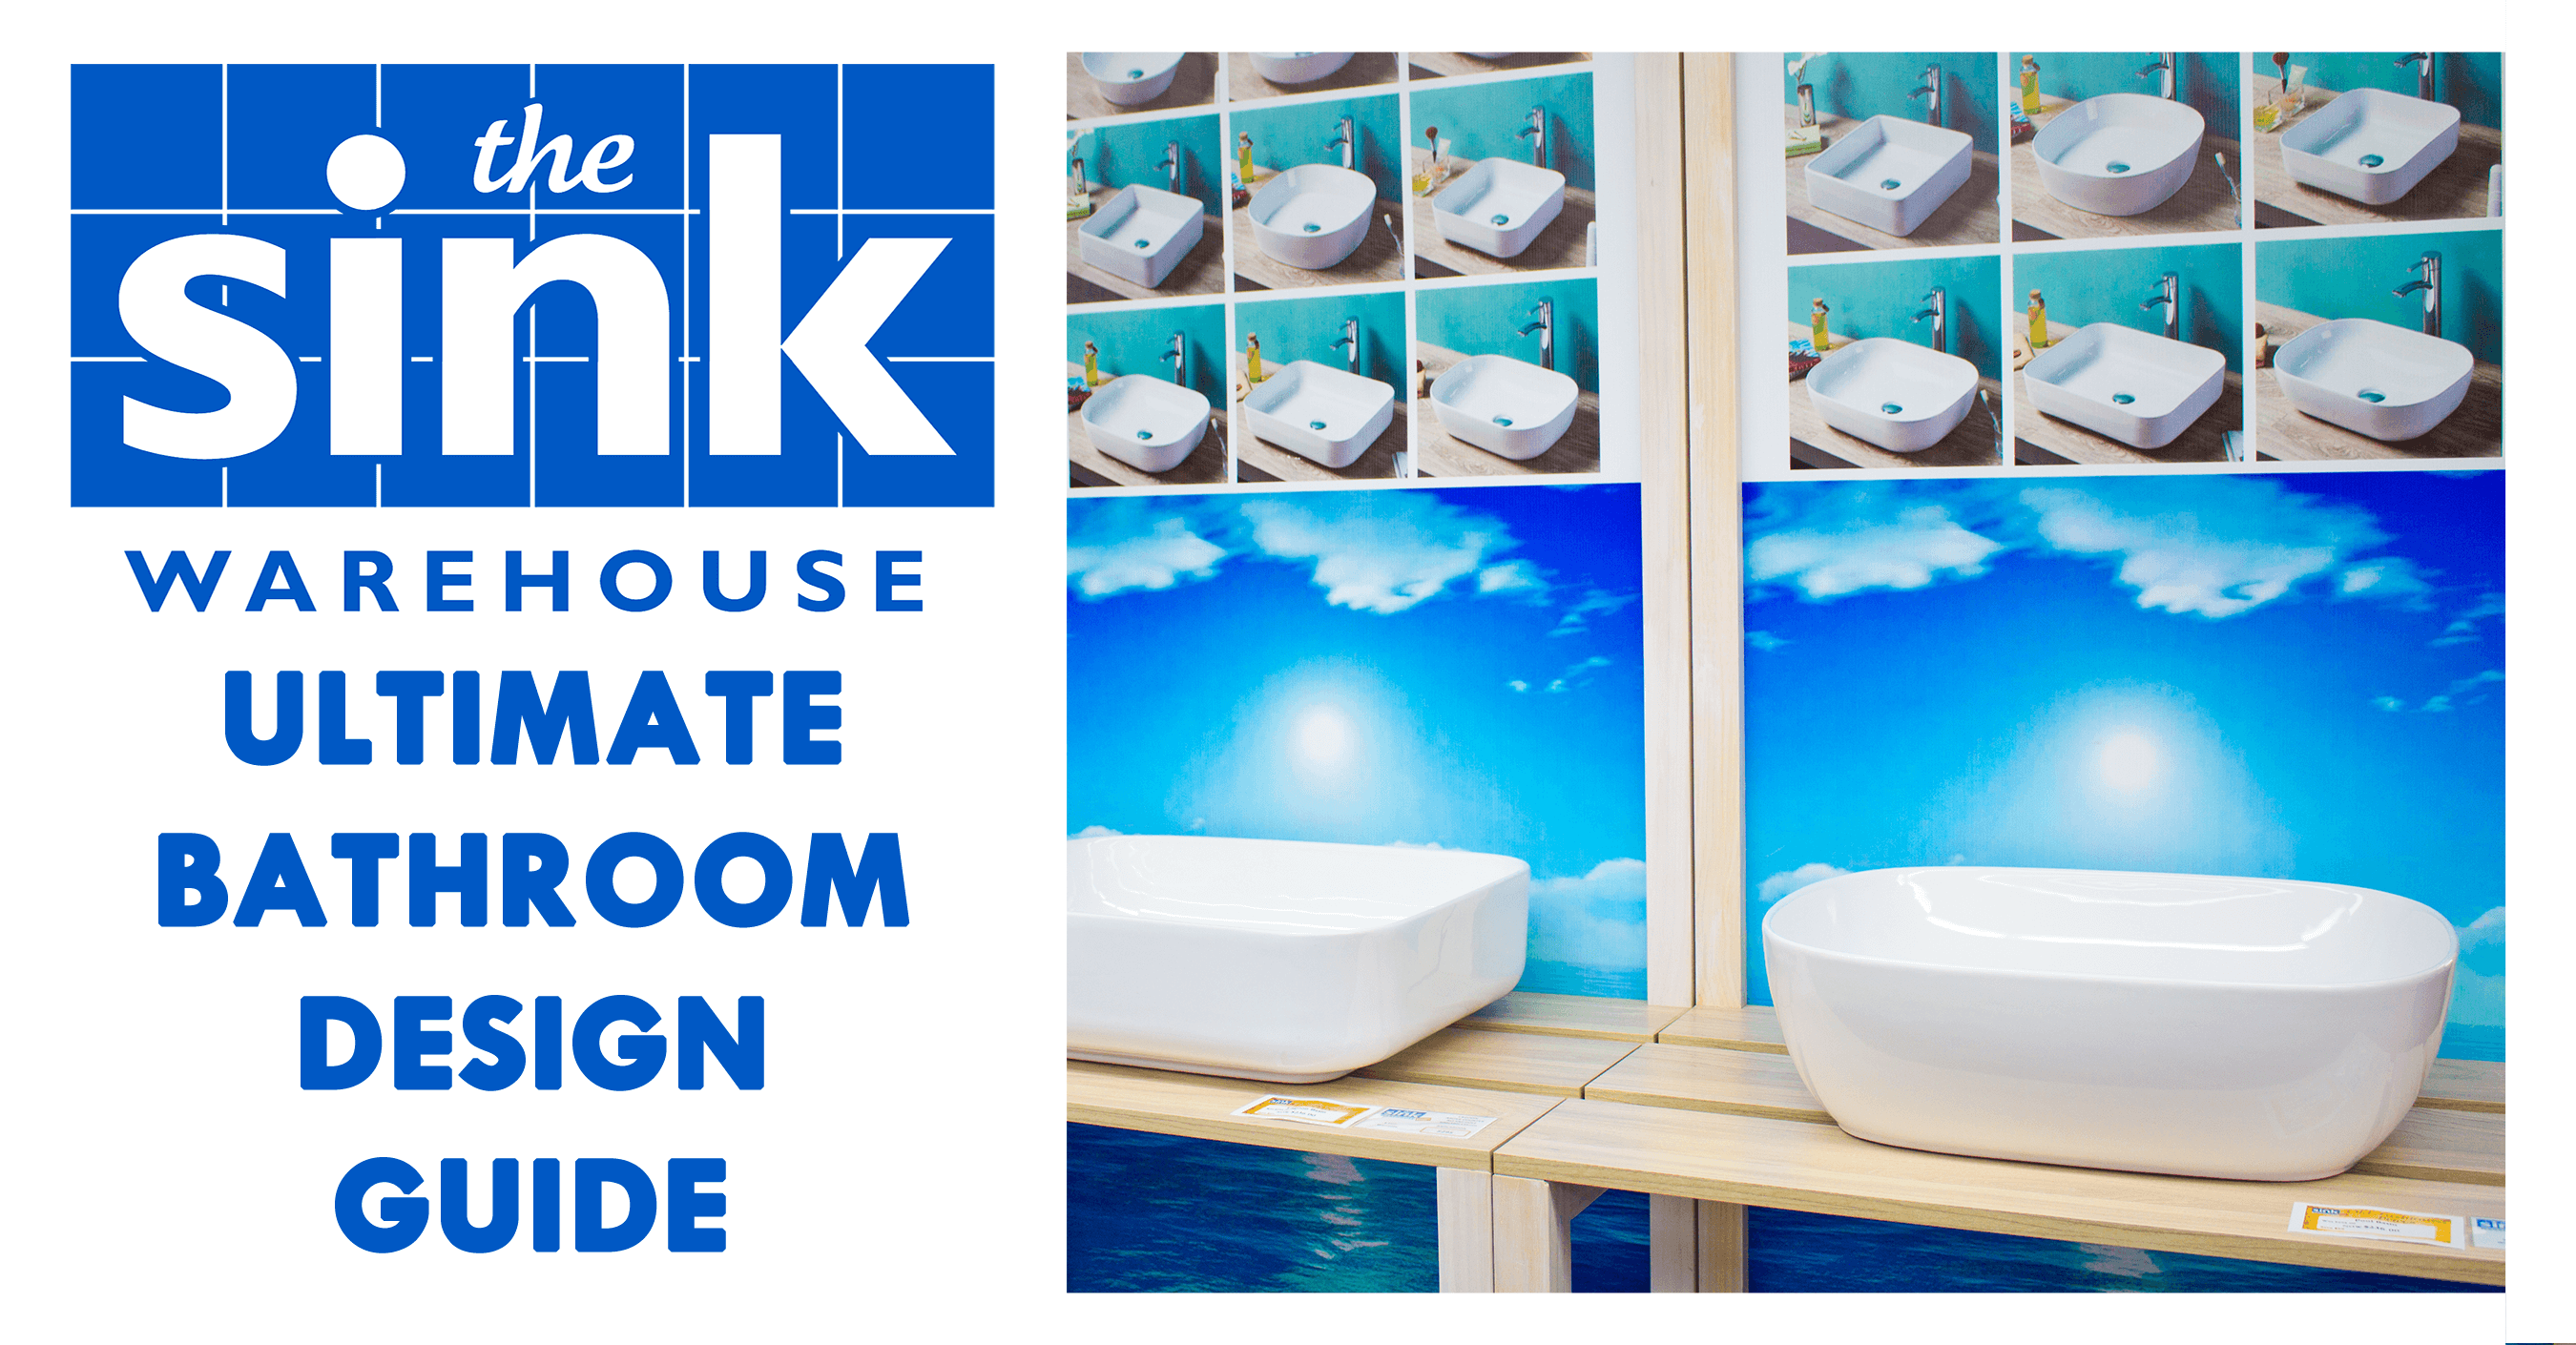 The sink warehouses ultimate bathroom design guide